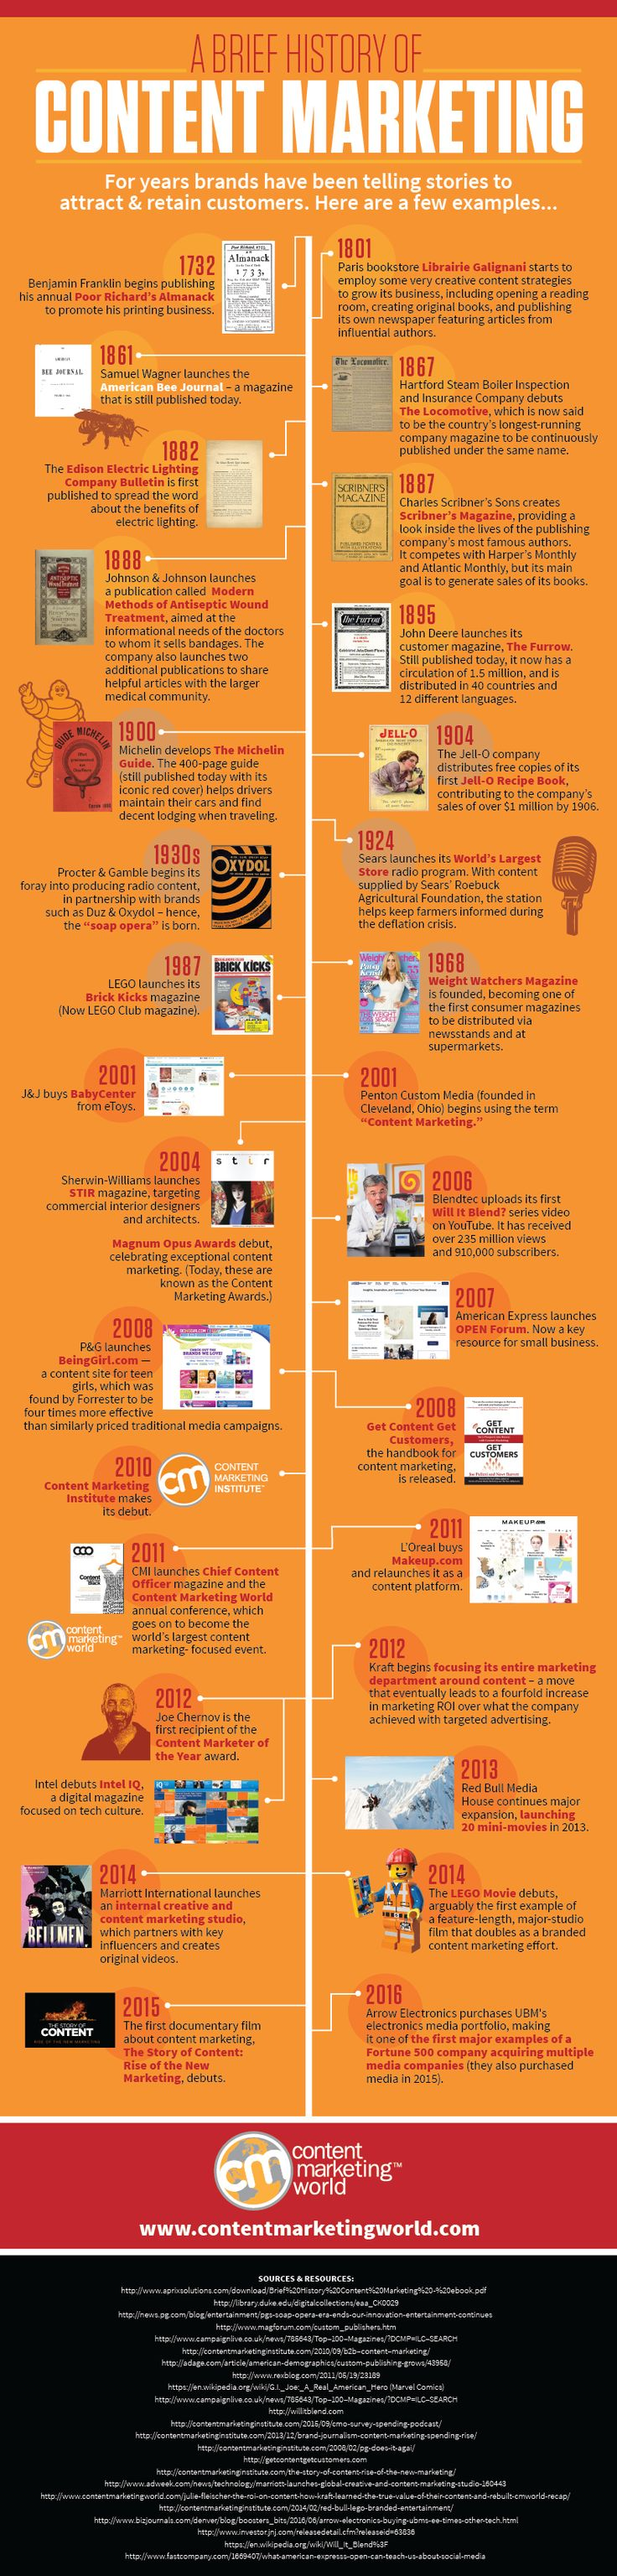 A great infographic on the history of content marketing and how it importance changes year by year.